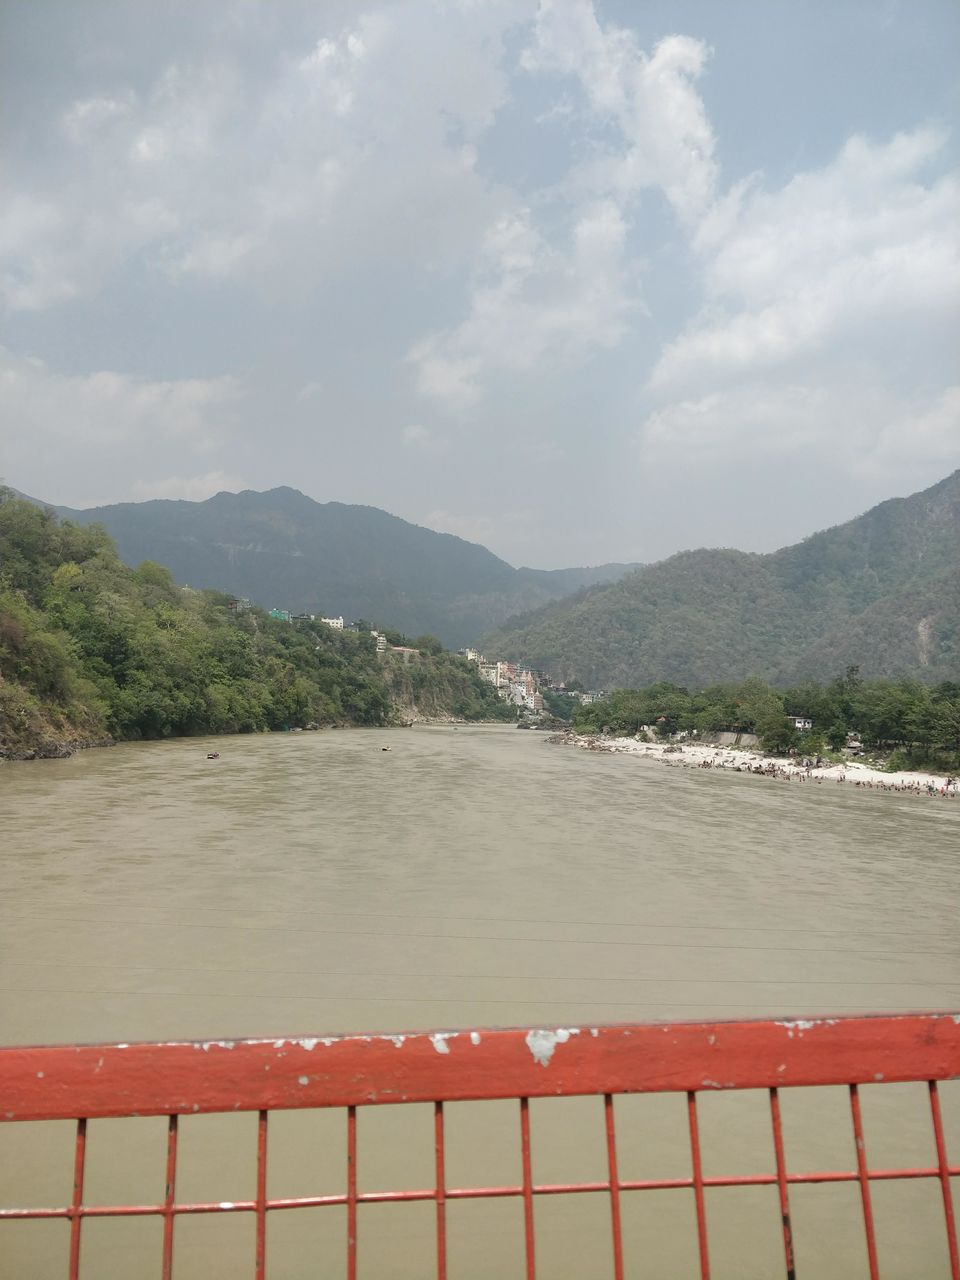 Photo of Rishikesh, Uttarakhand, India by theuncanny_traveller